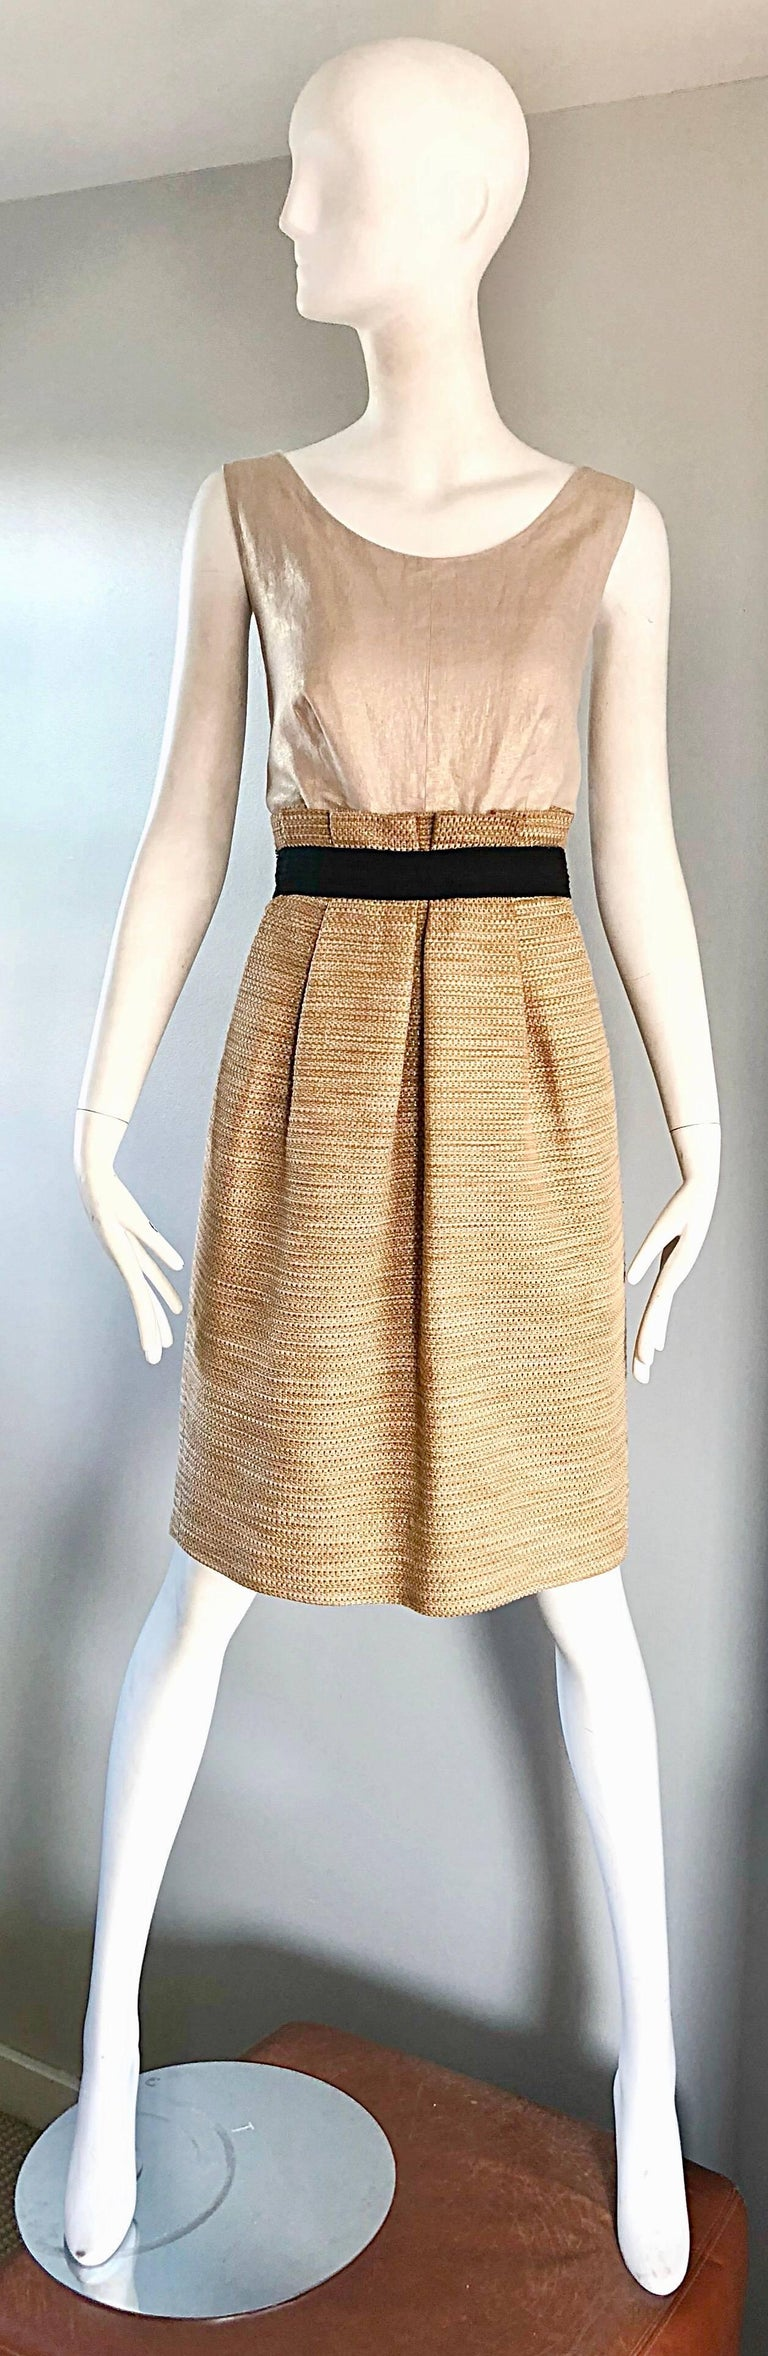 NWT 1990s Dolce & Gabbana Vintage 90s Gold Metallic Size 8 / 10 Cocktail Dress In New Condition For Sale In Chicago, IL